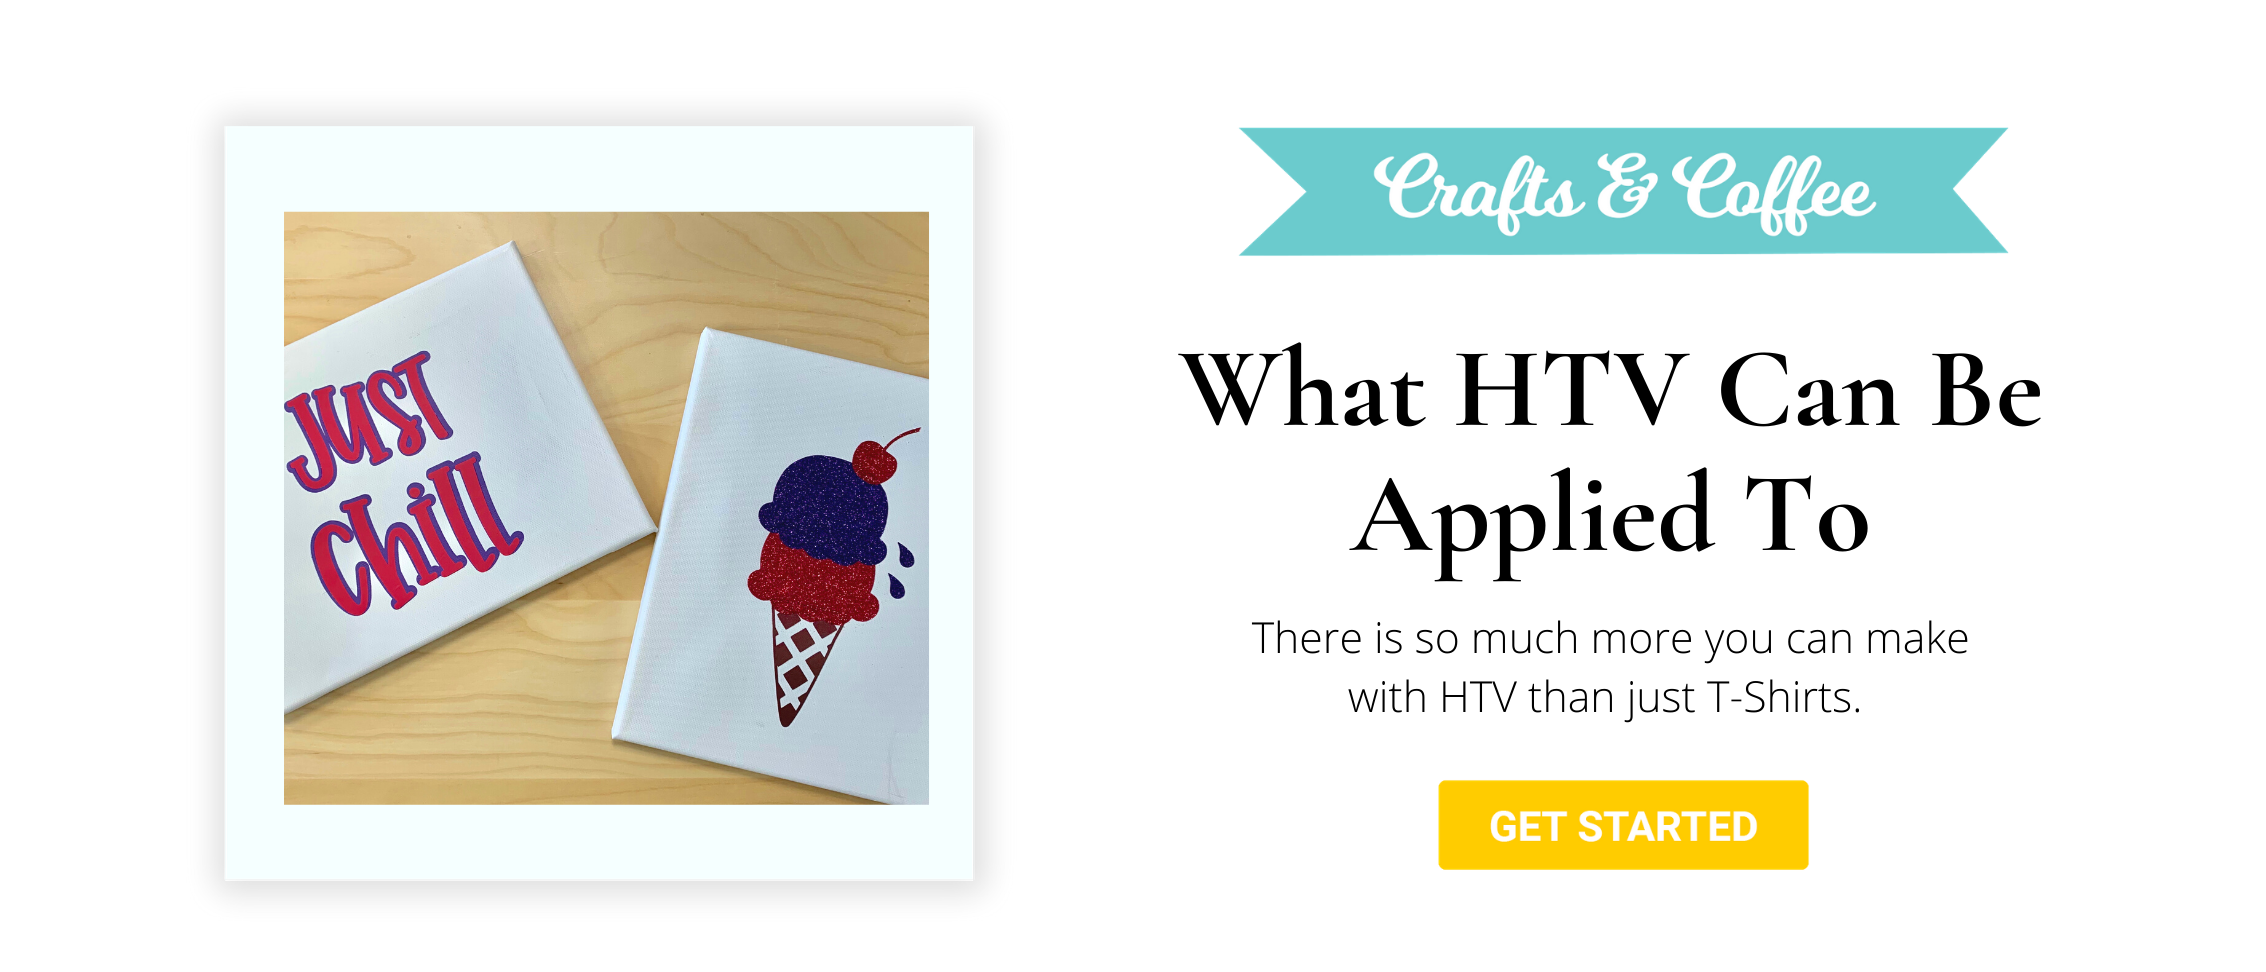 what can you apply htv to